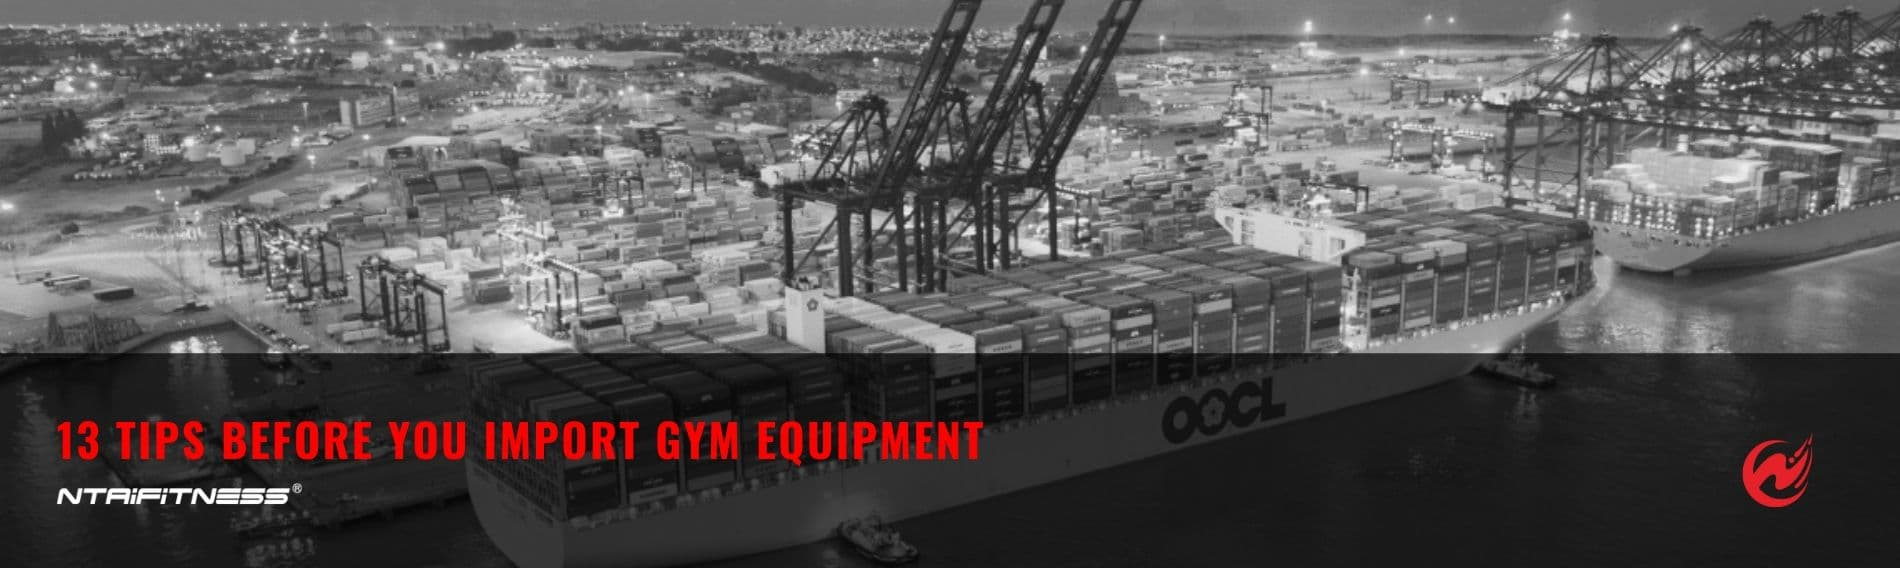 13 Tips Before You Import Gym Equipment